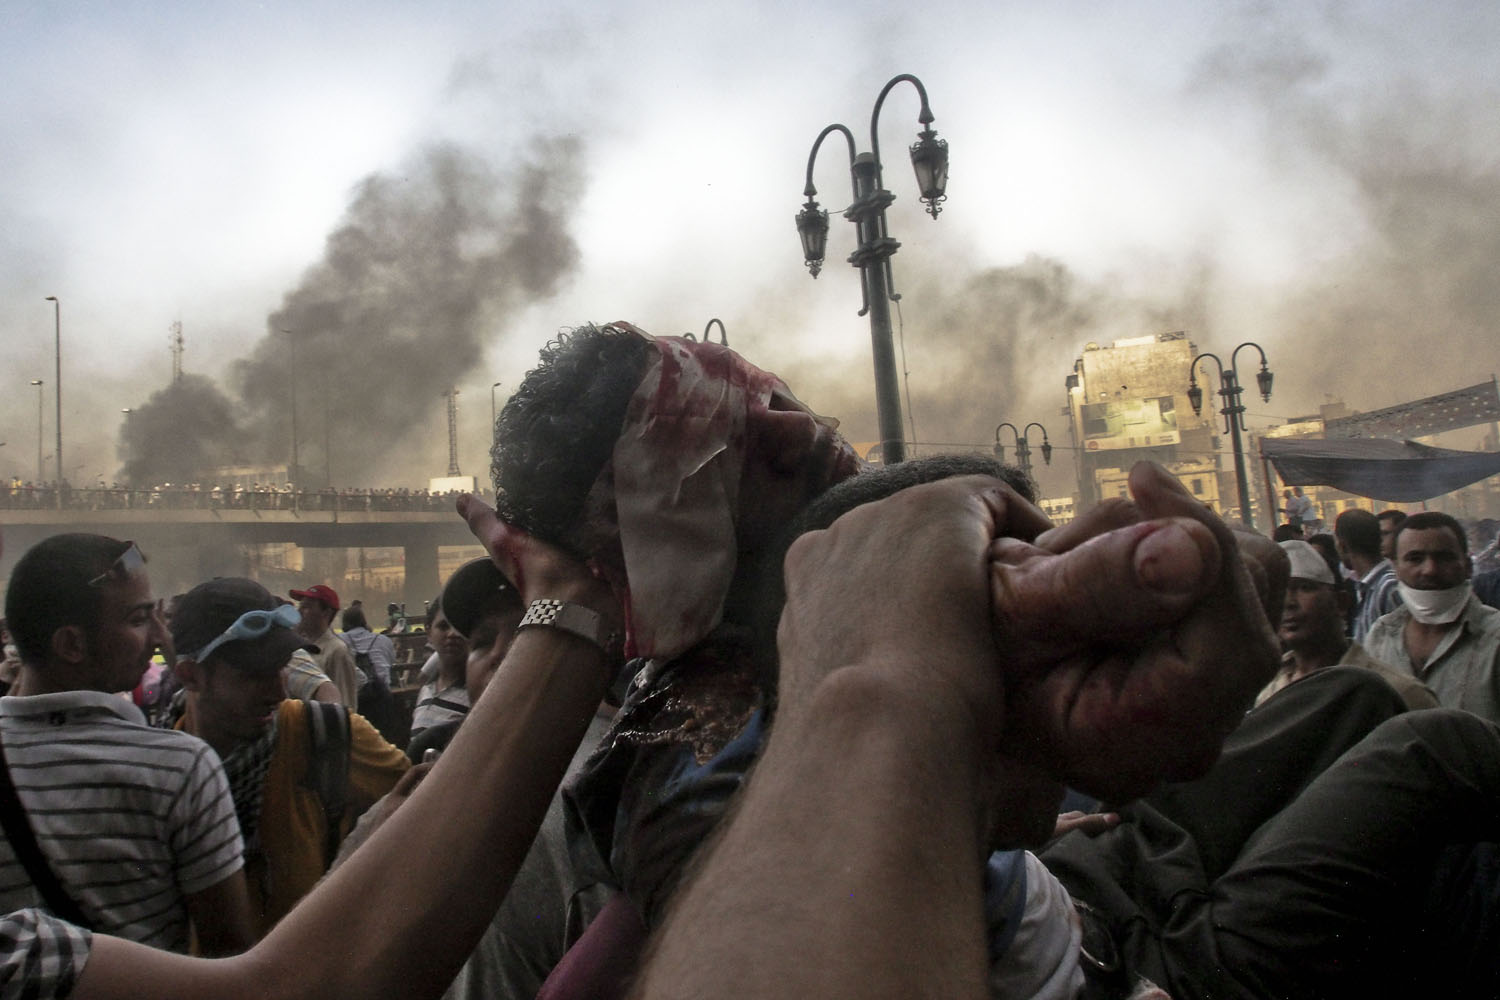 Aug. 16, 2013. Fellow demonstrators carry the lifeless body of a man fatally wounded during clashes between pro-Muslim Brotherhood demonstrators and Egyptian security forces in the Ramses district of Cairo.